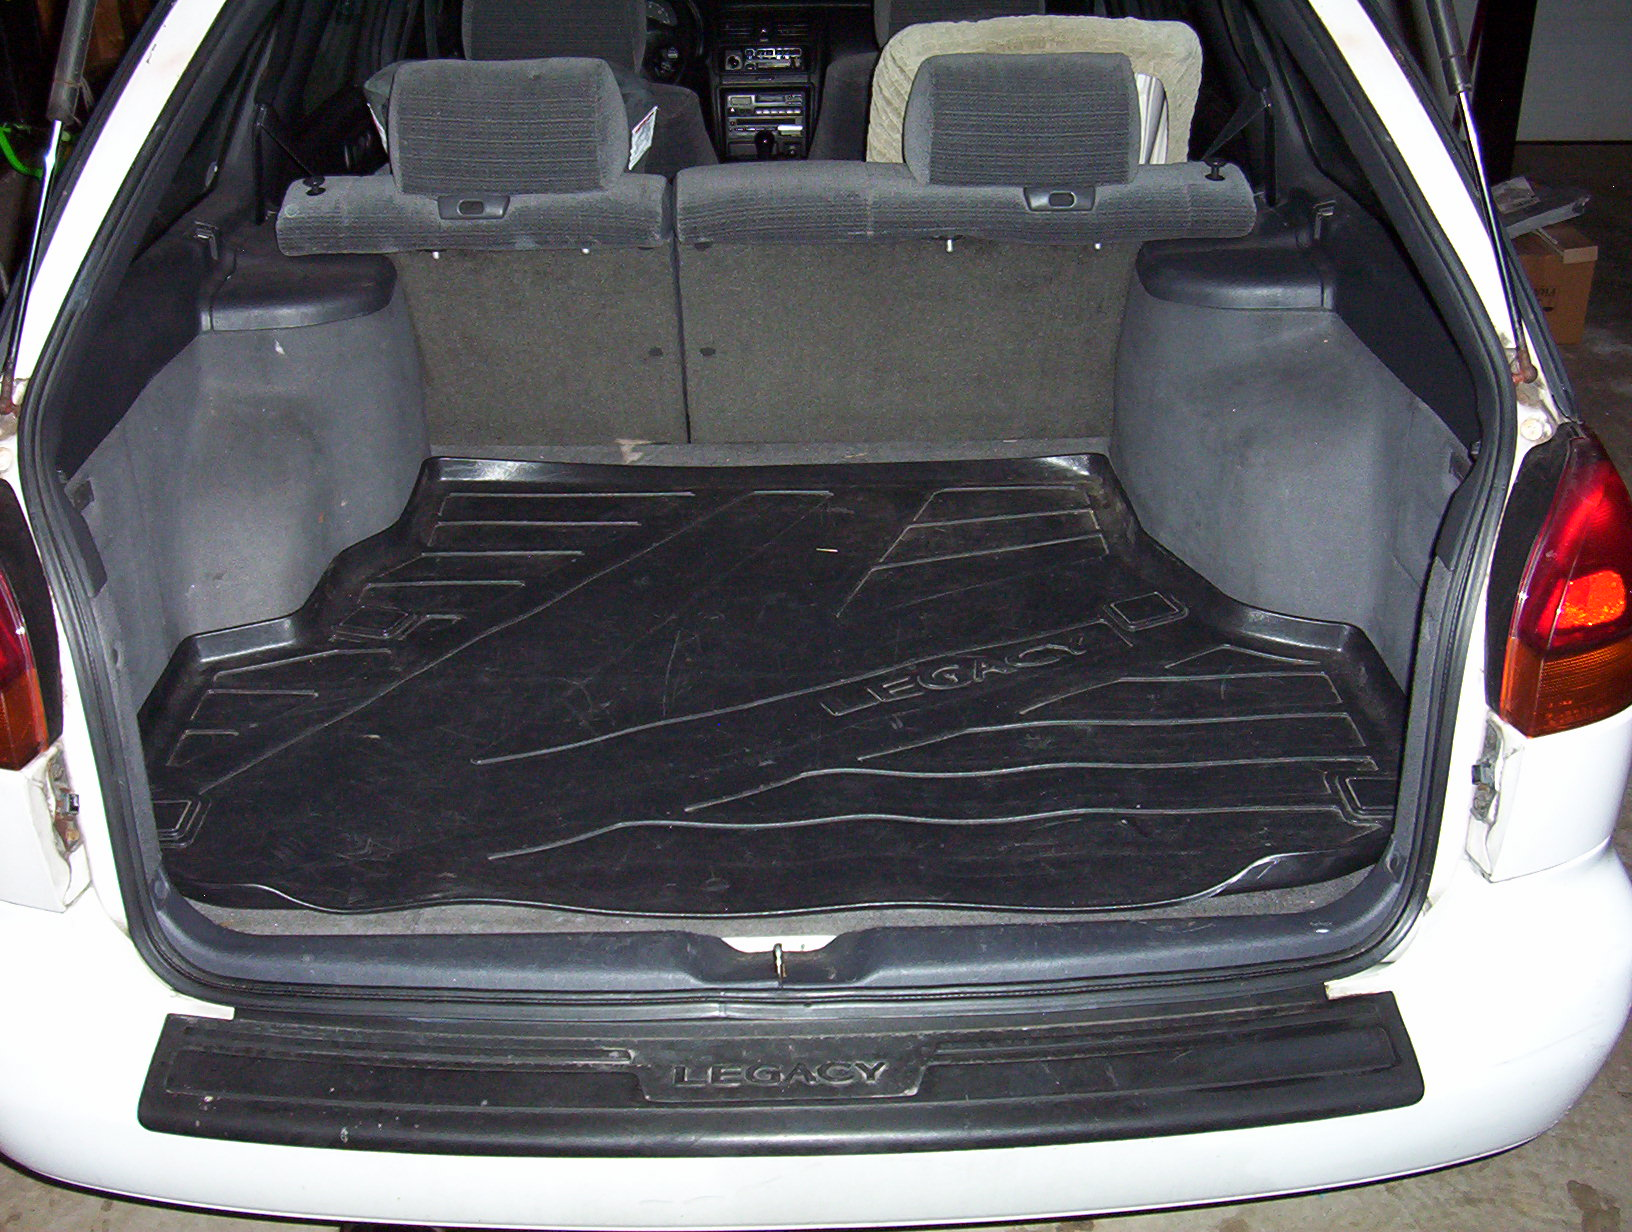 Subaru Legacy or Outback 3rd third row folding seat-cover.jpg